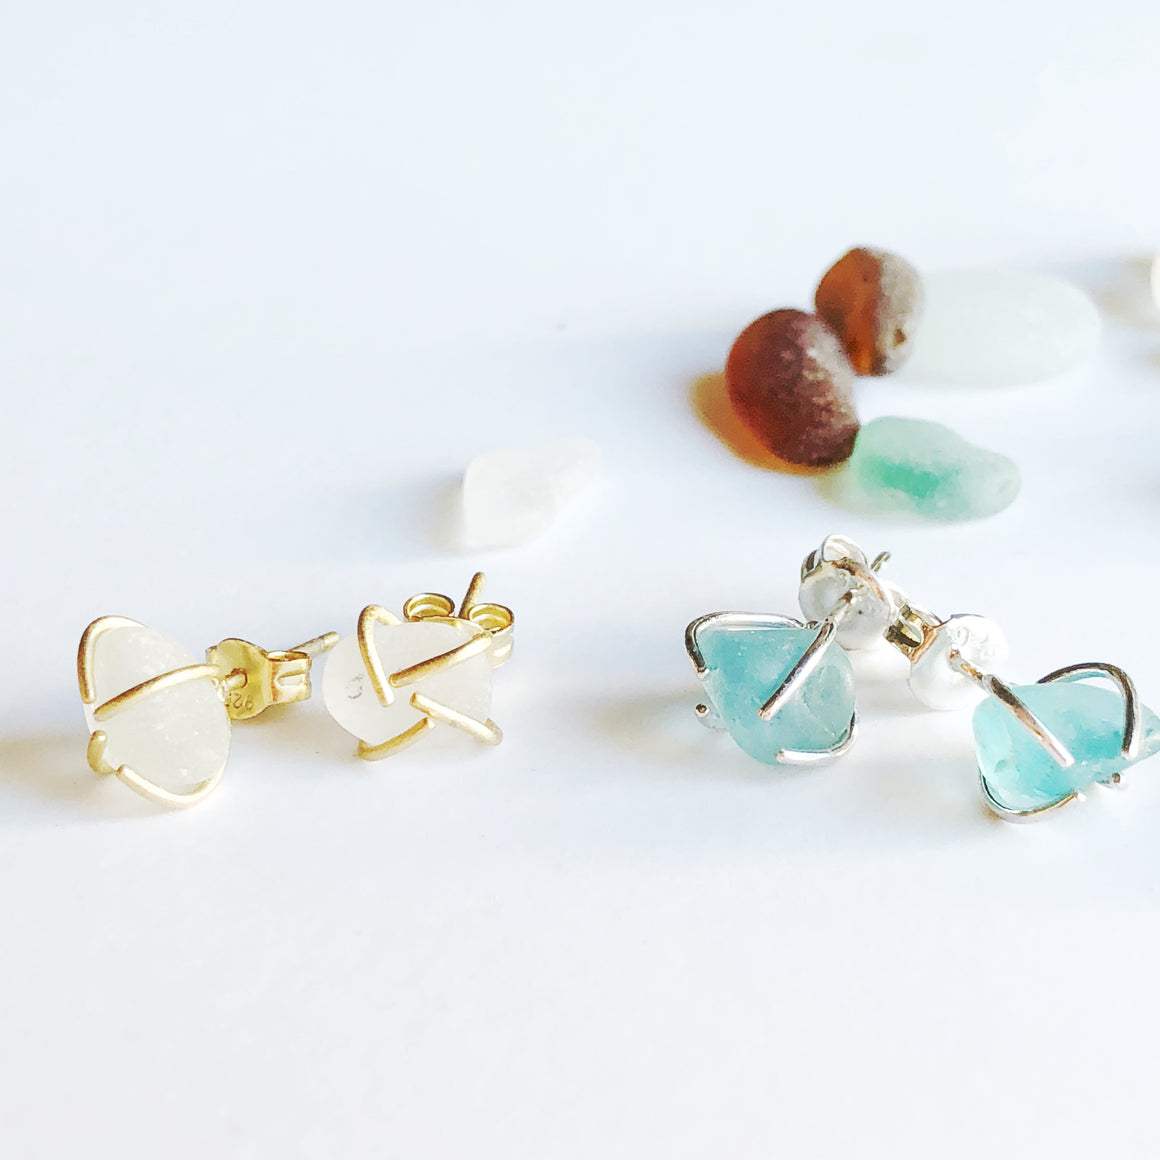 Marni LuHu Sea Glass Studs